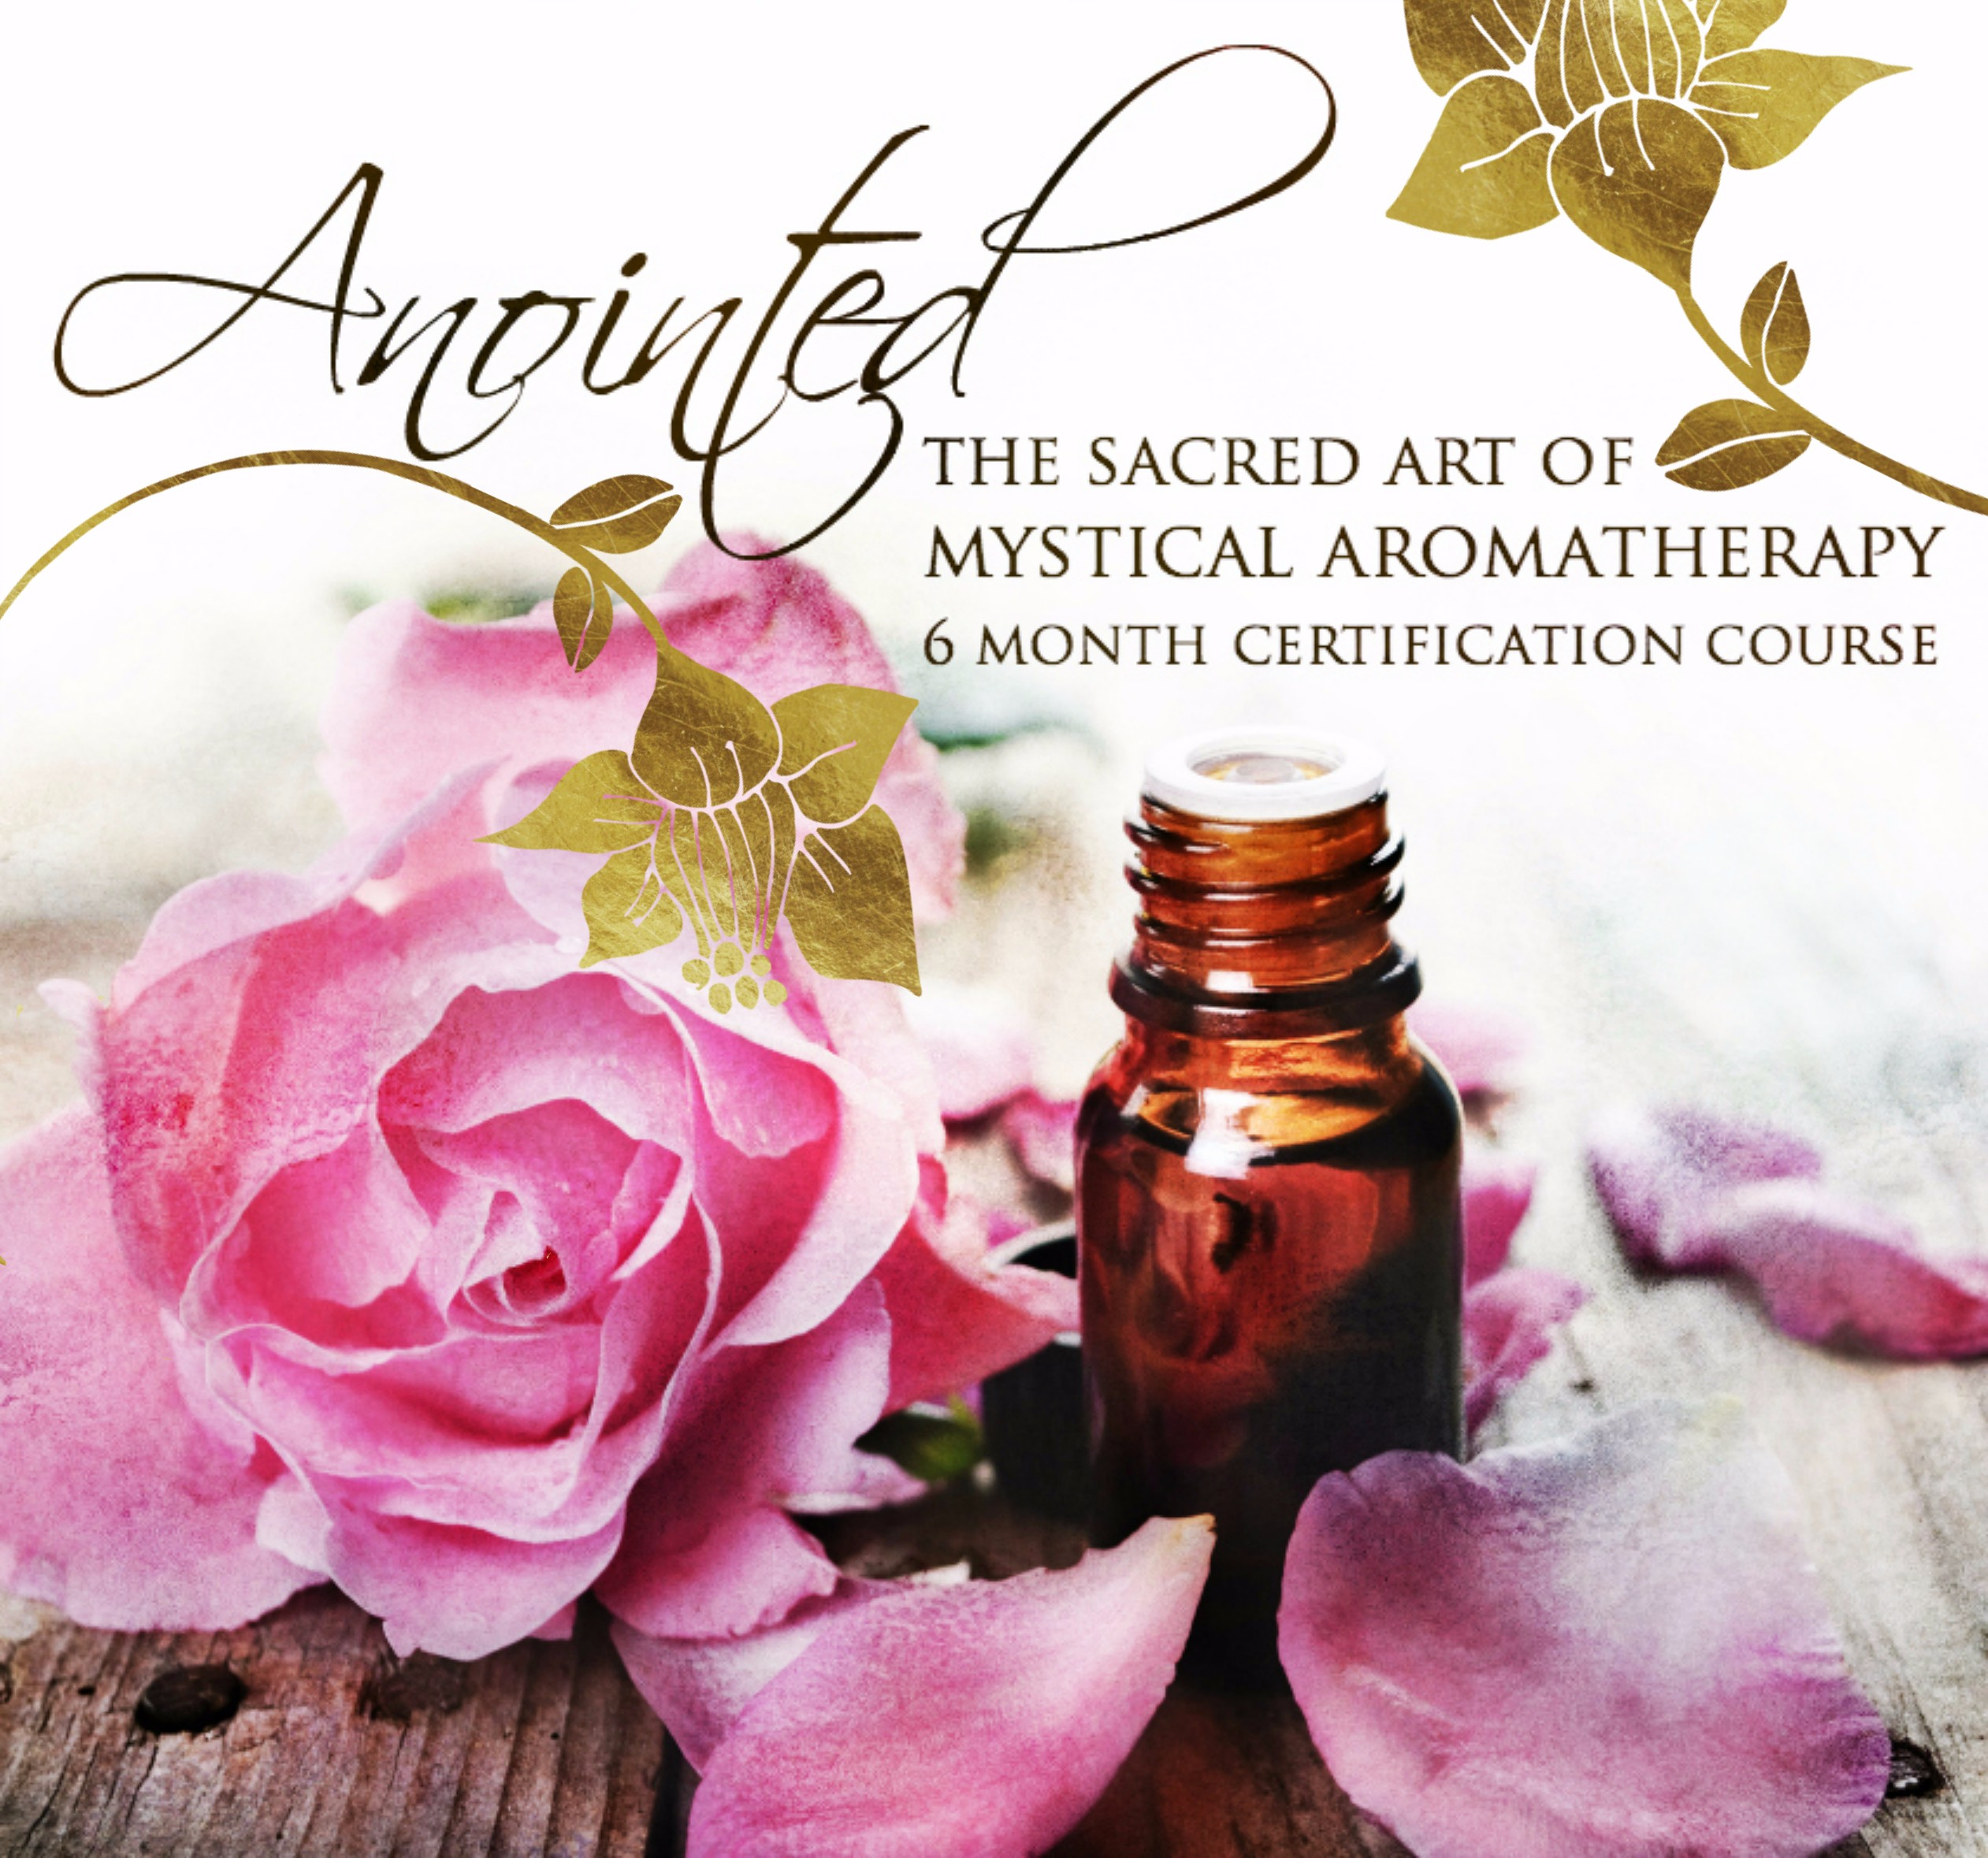 Sign Up For Anointed The Sacred Art Of Mystical Aromatherapy Self